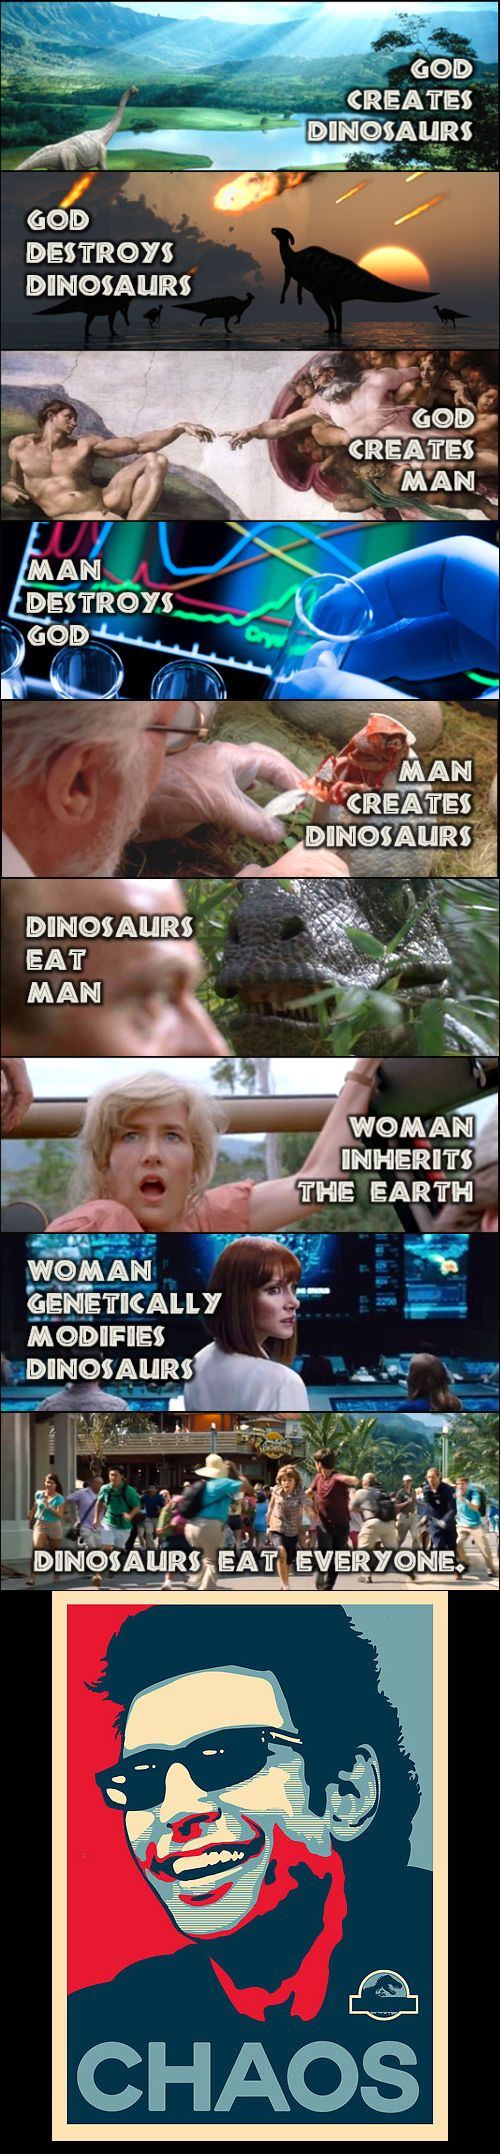 """The Summation of The Jurassic Park Series in a Comic"" Looks like Malcom was right all along."